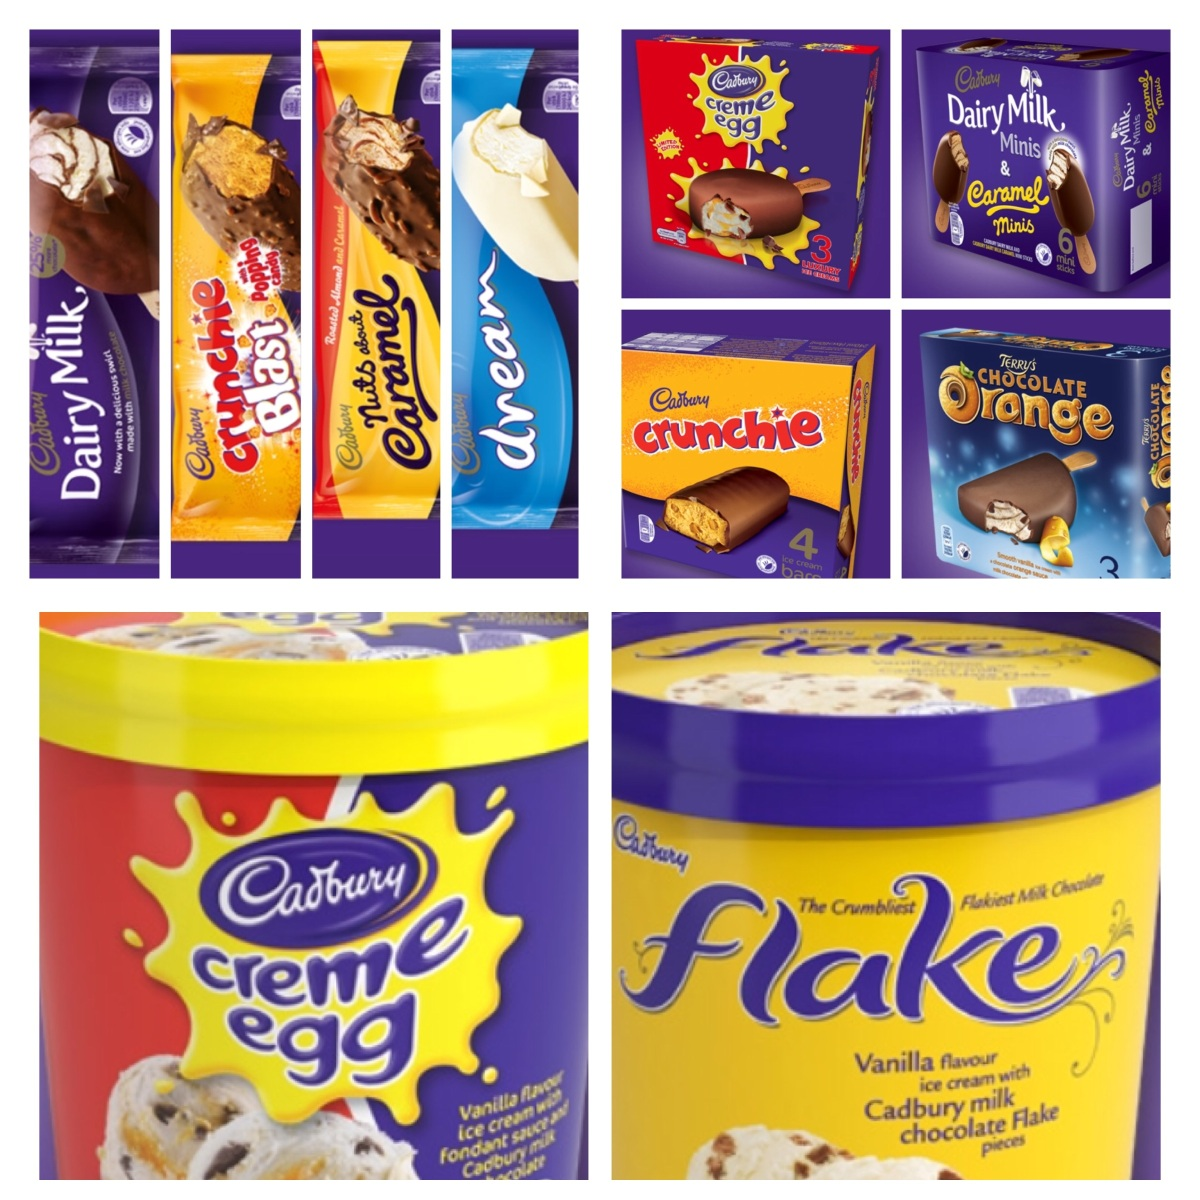 More Gluten Free Ice Cream products to enjoy... (by Mars and Cadburys)